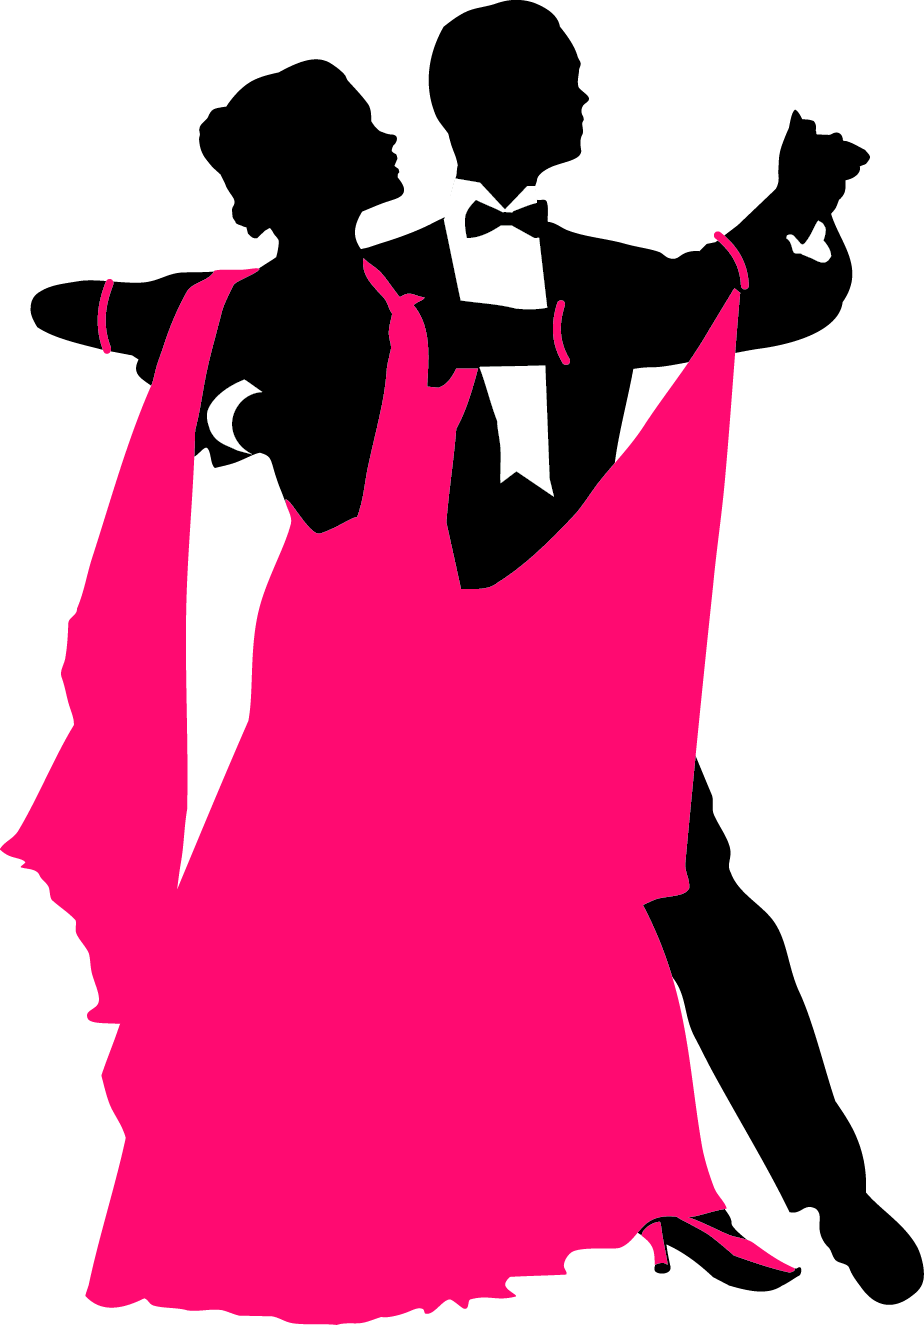 Silhouette 8.png